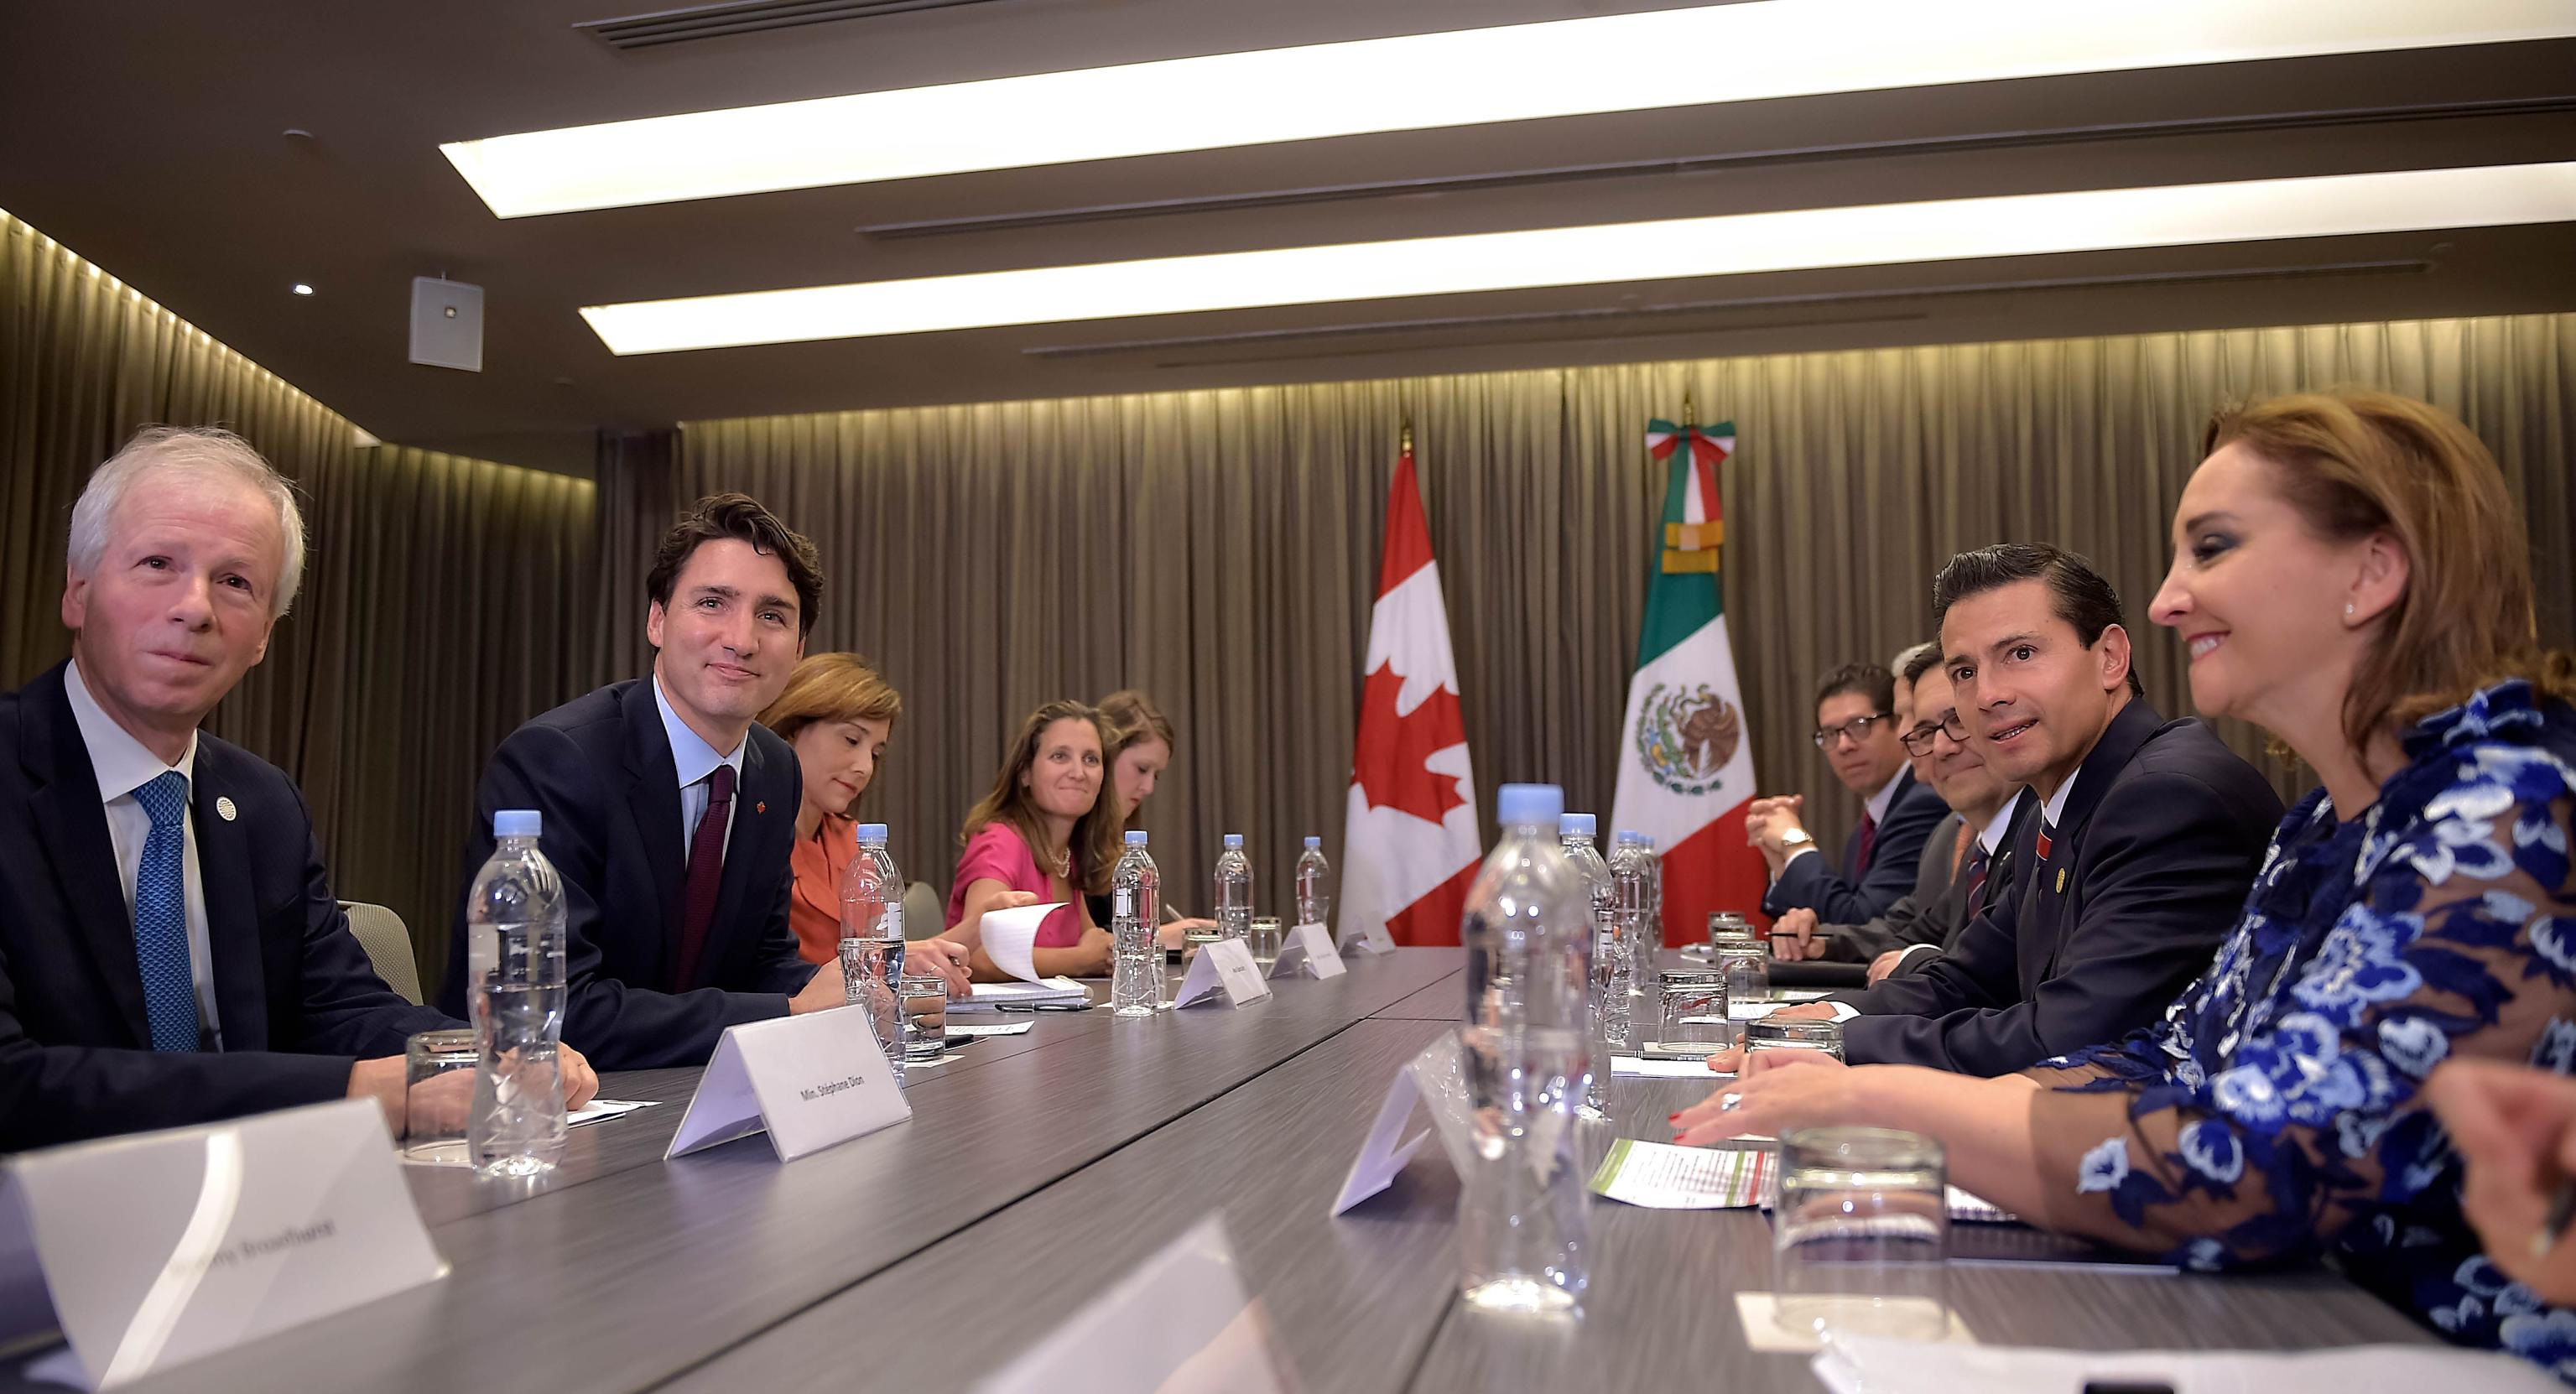 Both leaders said that, as partners, friends and allies, the two countries should collaborate continuously, closely and effectively to further promote North America as a competitive, prosperous region.